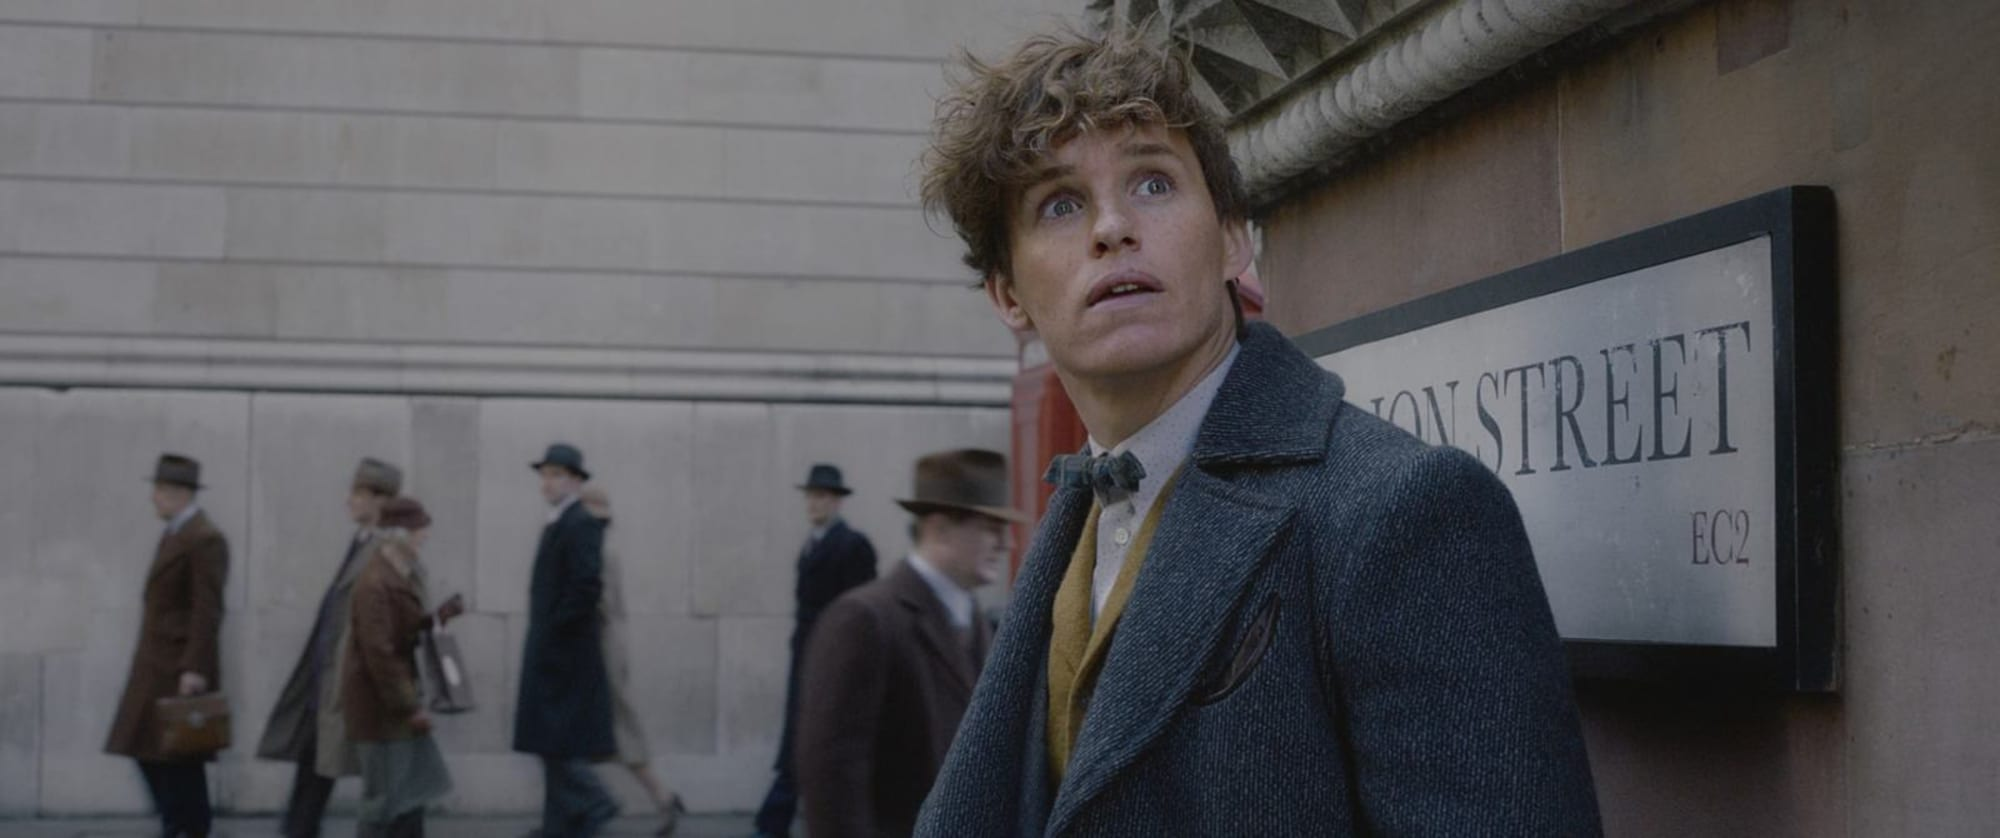 Why Fantastic Beasts isn't as fulfilling for some fans of the Harry Potter series